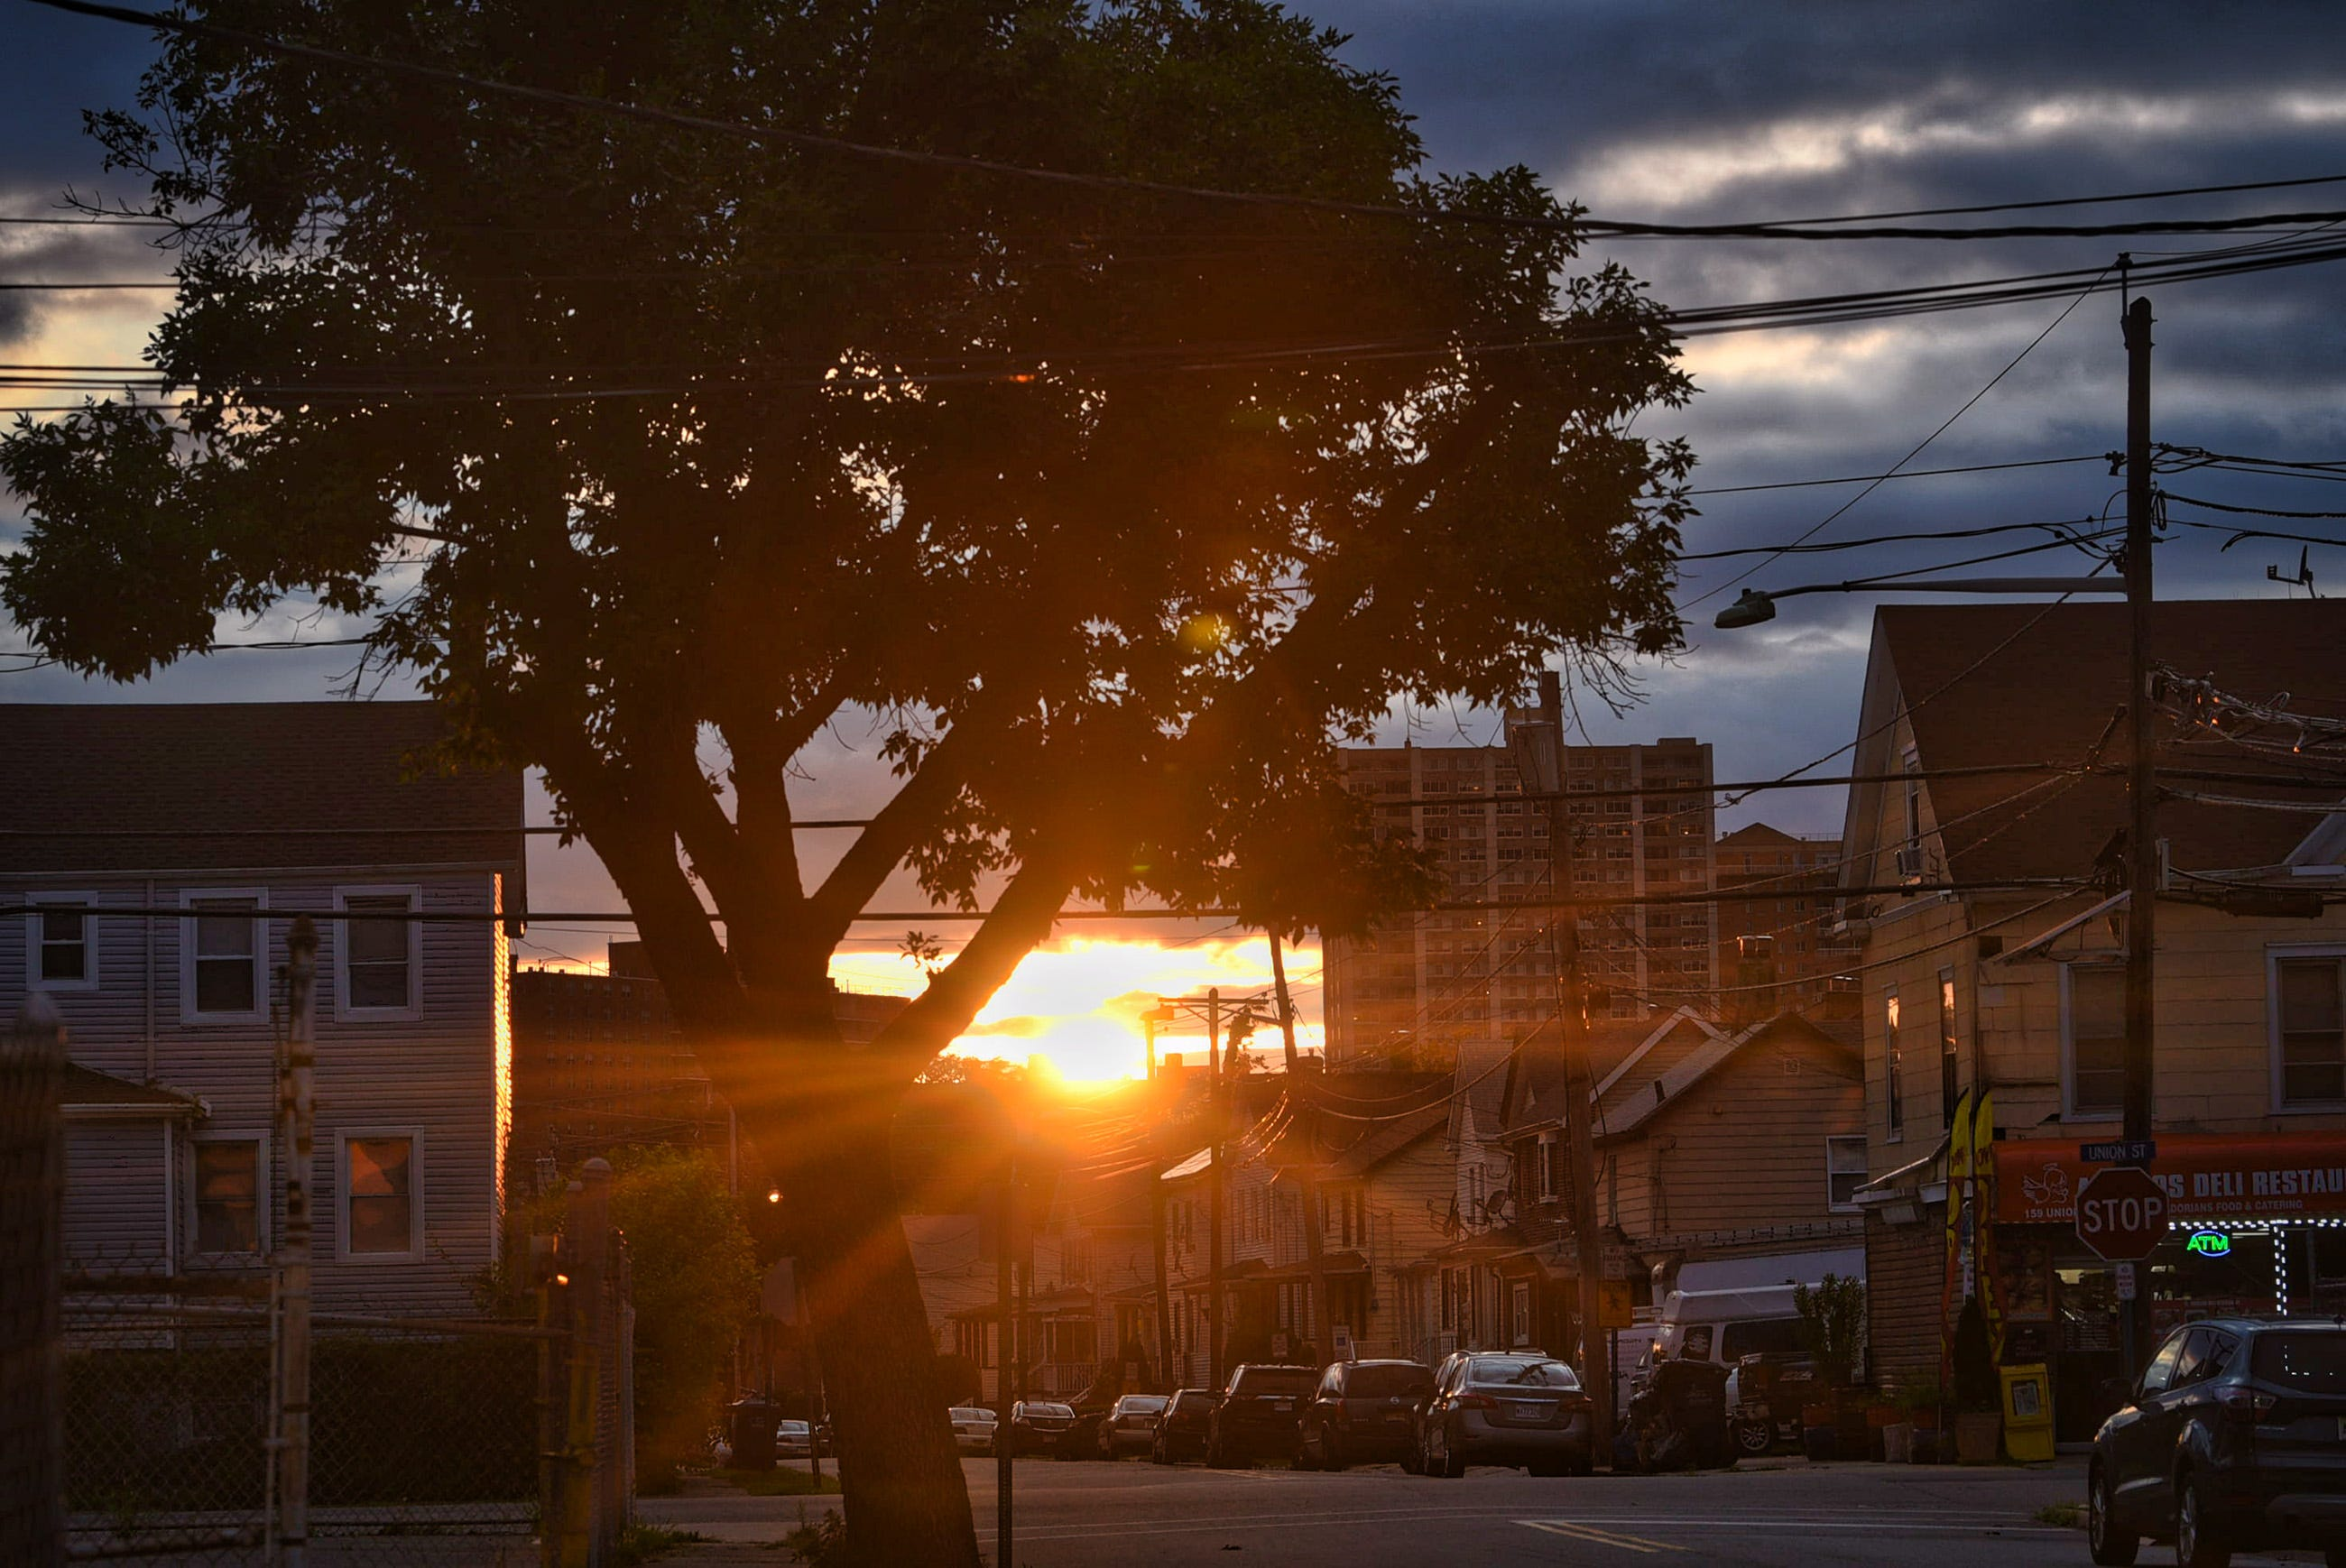 The sun begins to set behind the buildings at the corner of Union and Lawrence streets in Hackensack on 07/18/21.